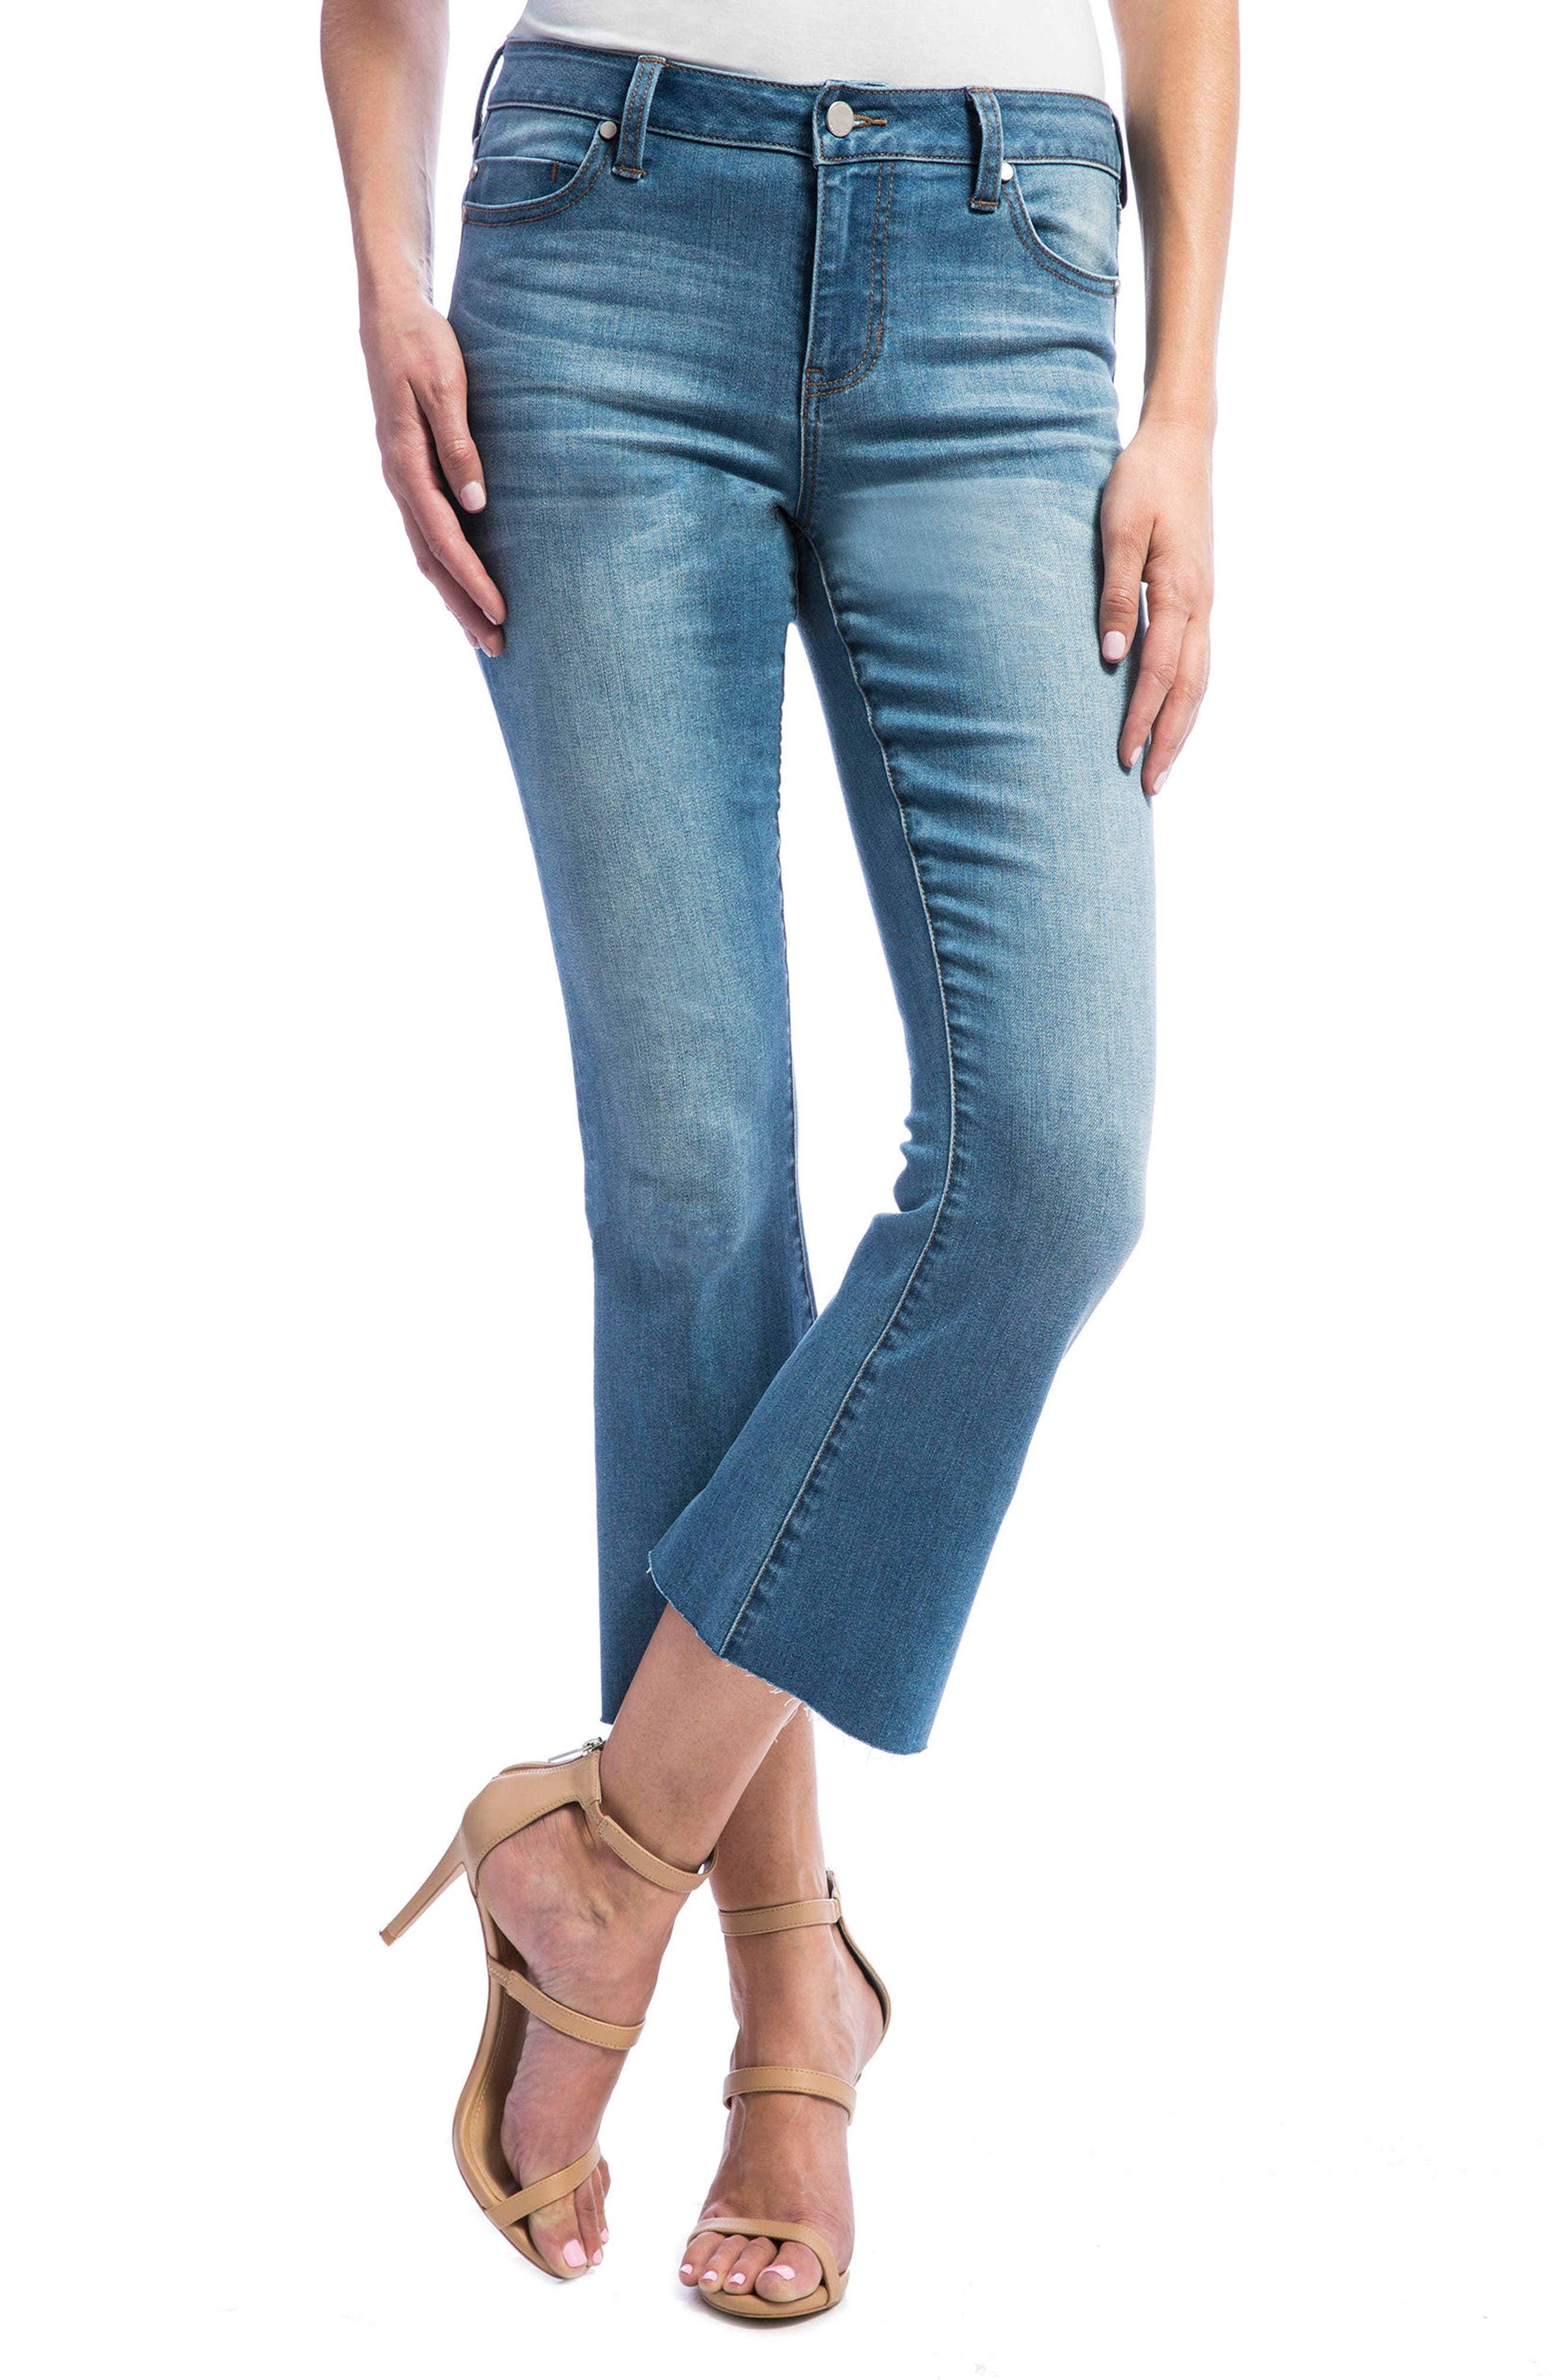 Liverpool Jeans Company Stretch Crop Flare Leg Jeans (Claremont Light)